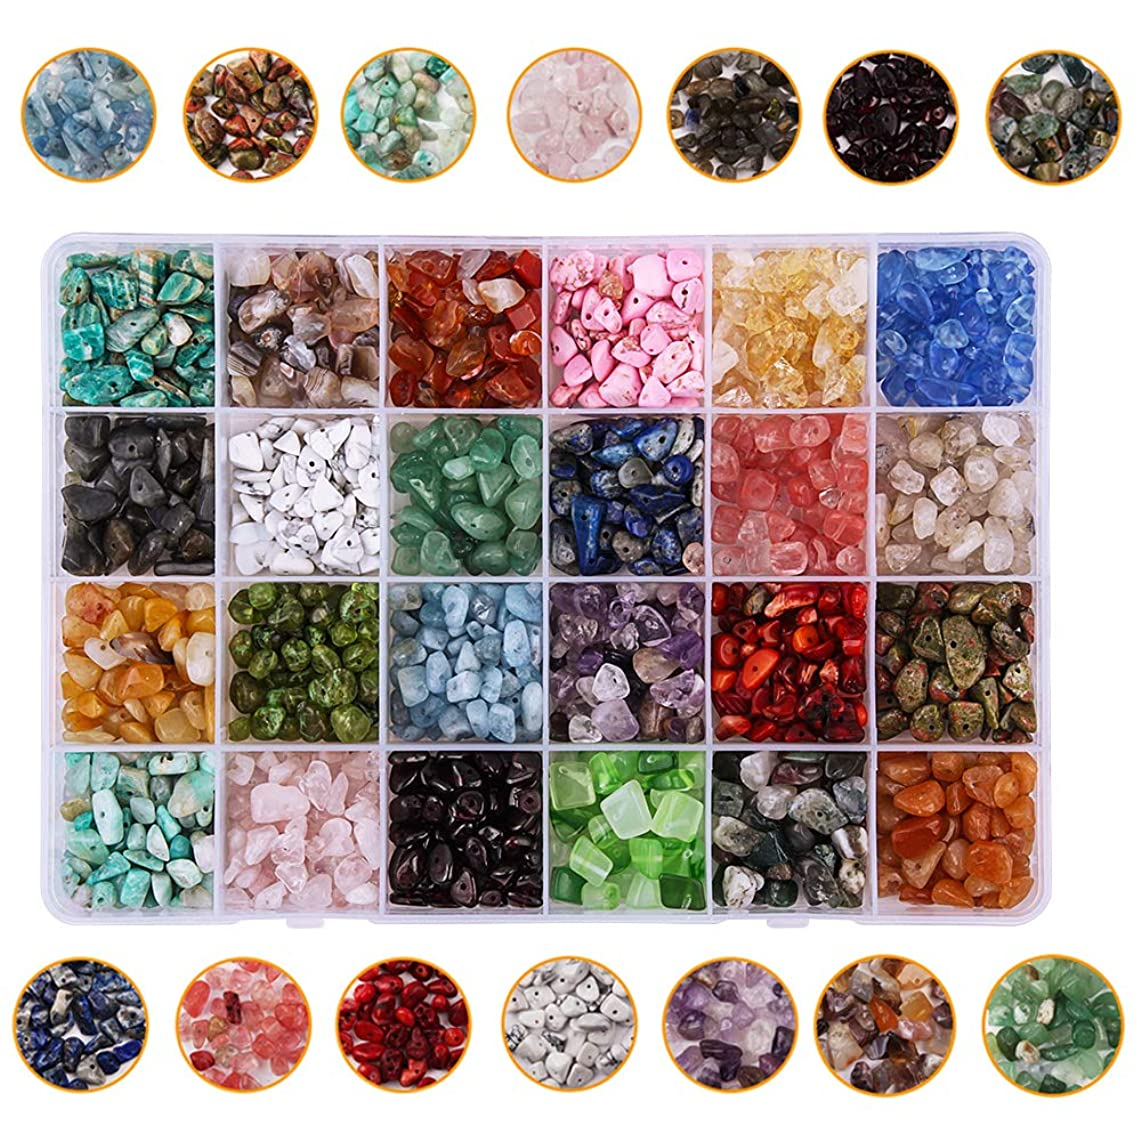 Dushi Natural Irregular Chips Beads for Jewelry Making Gemstone Beads Crystal Pieces Loose Beads DIY Necklace Bracelet(Plastic Box is Included)